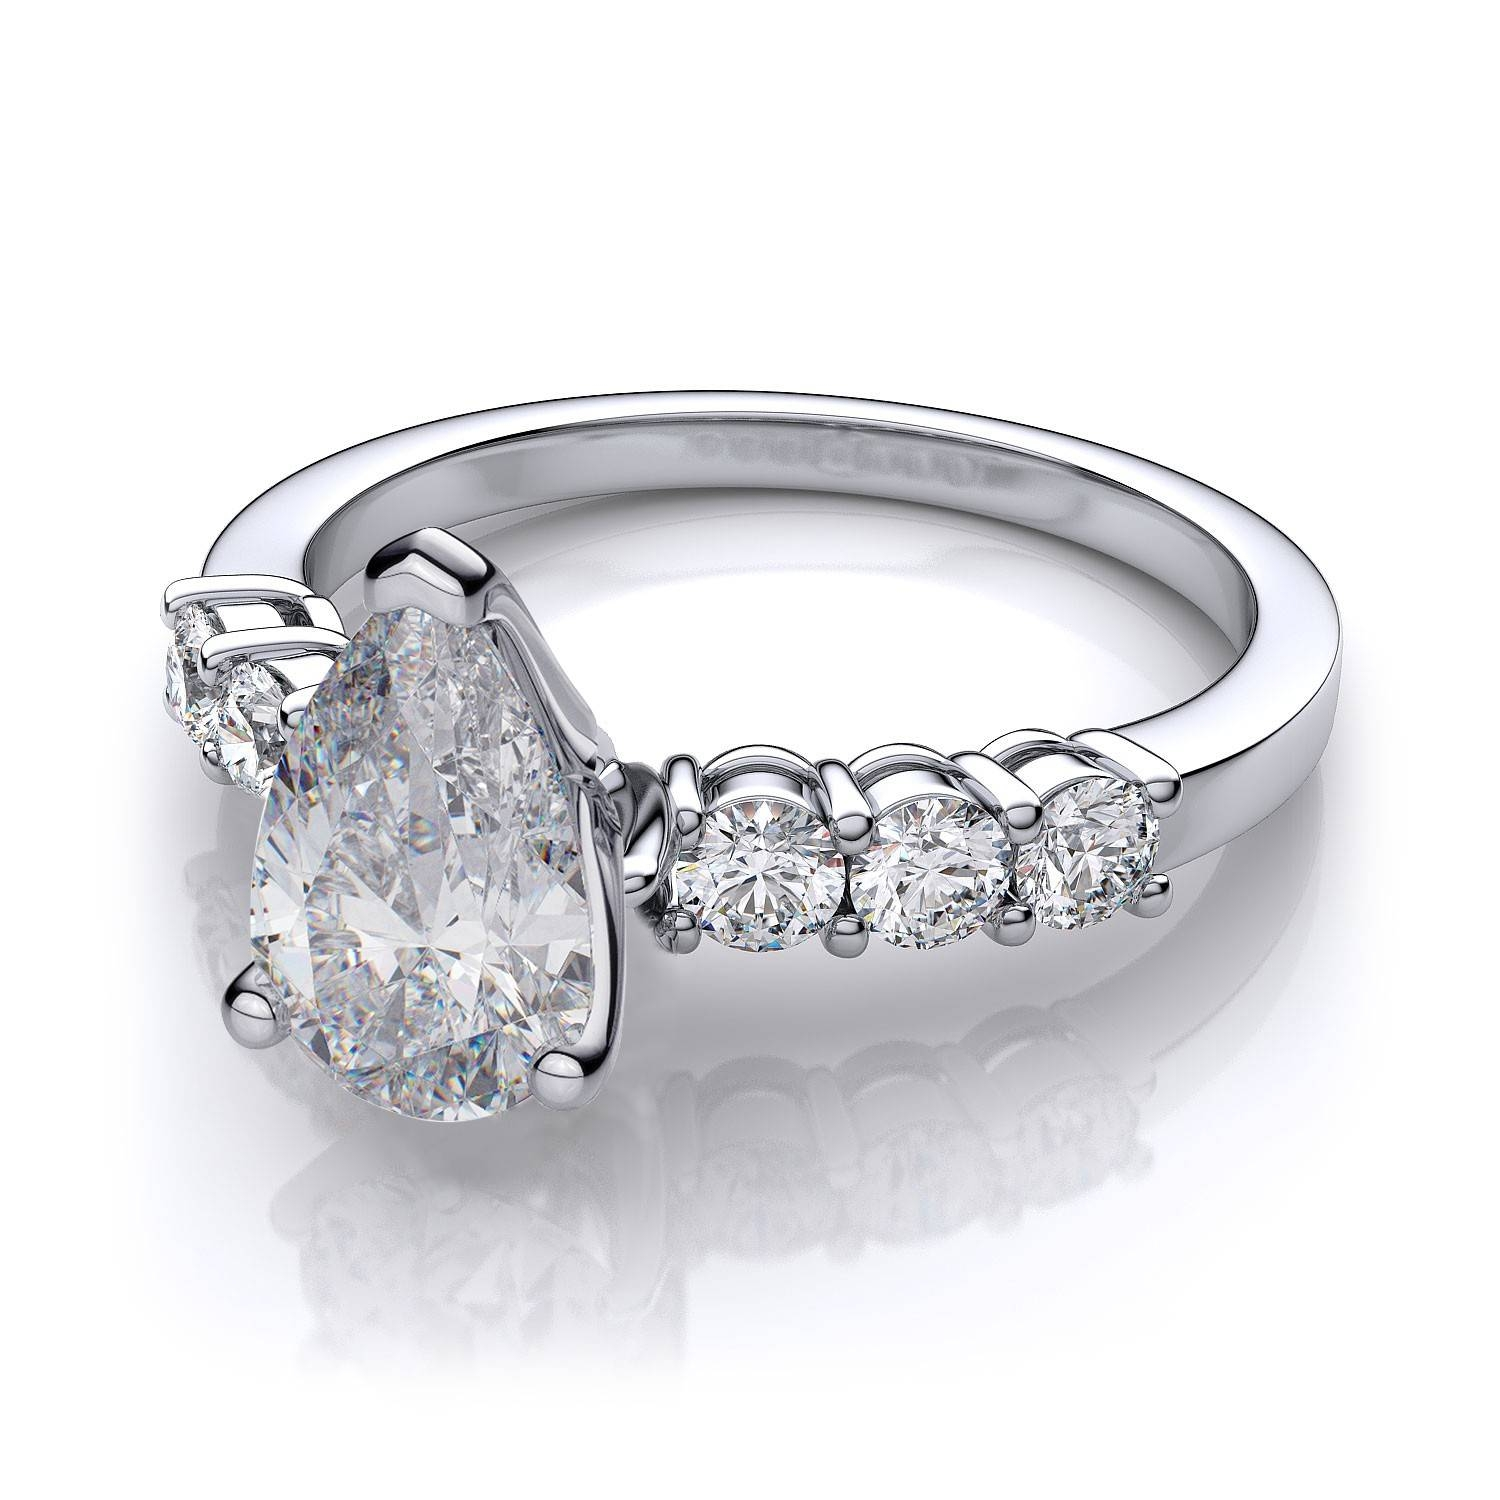 setting in diamond settings jewellery ring solitaire white gold engagement cathedral prong tapered